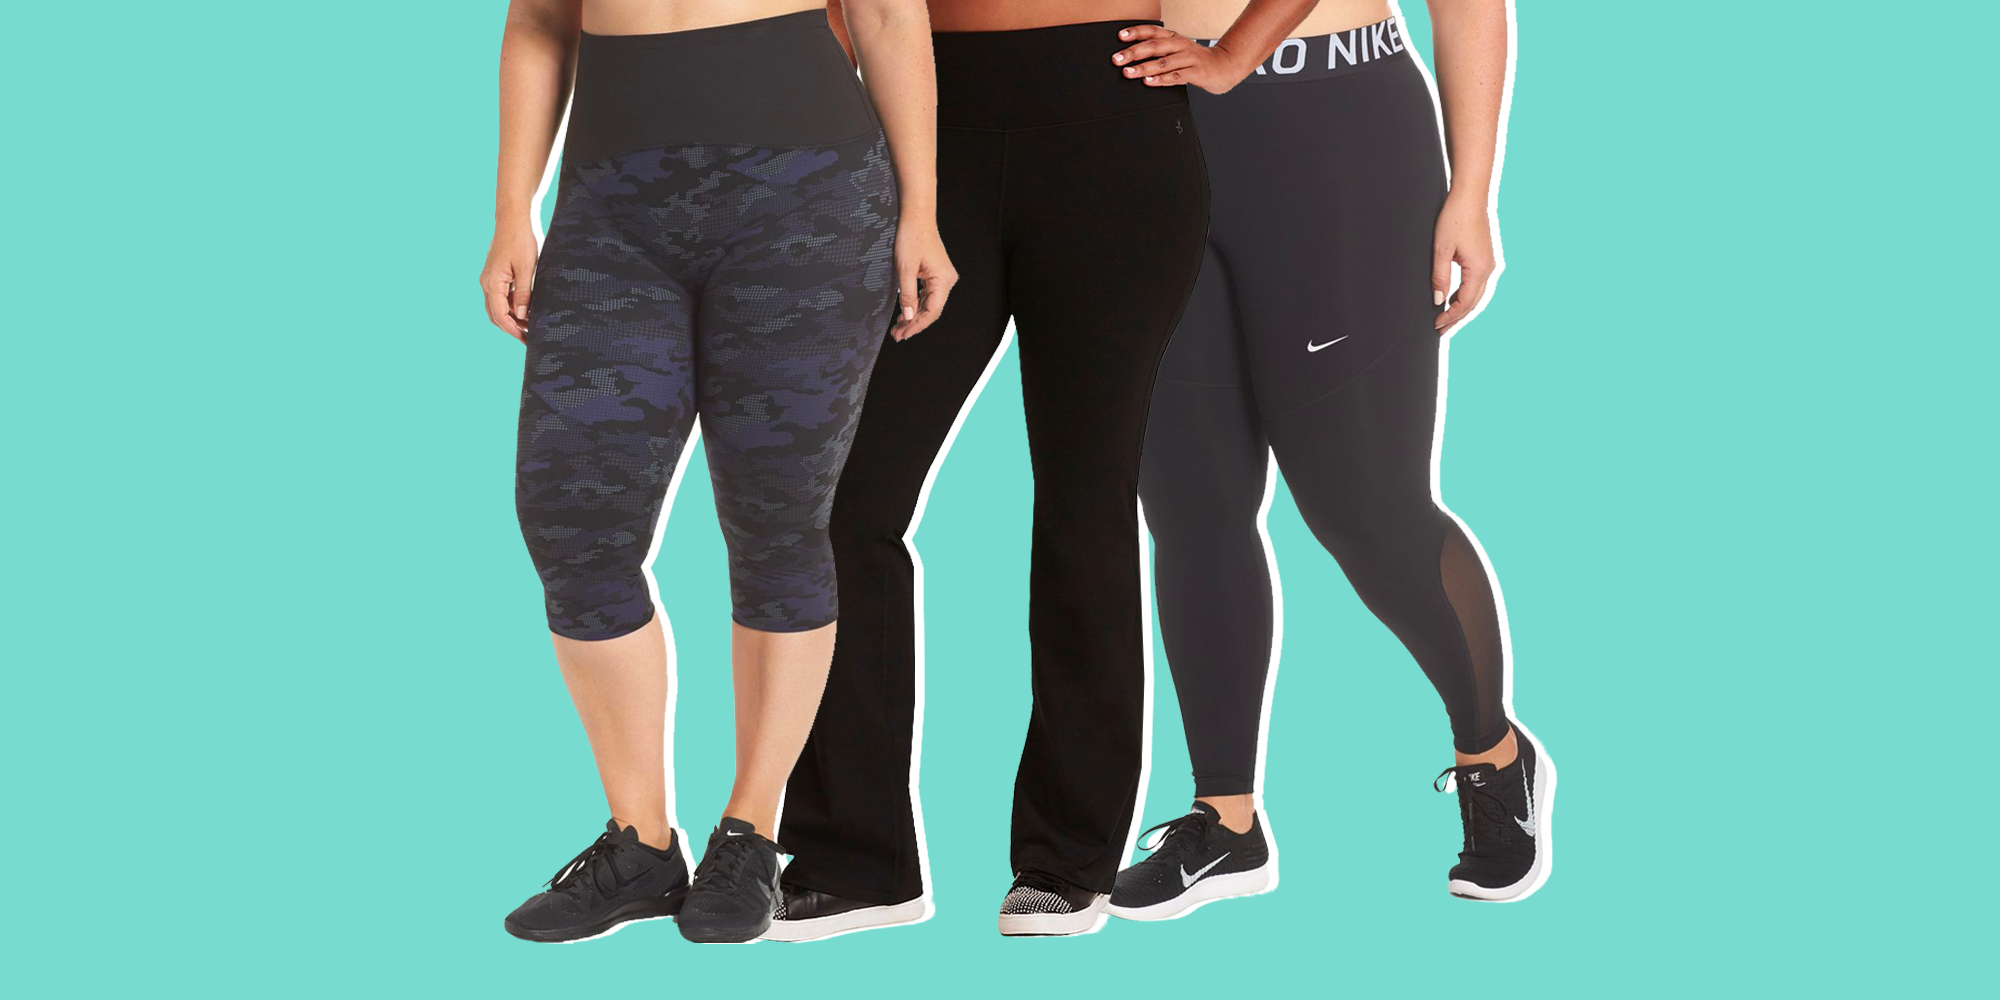 The Best Plus-Size Yoga Pants for a Better Workout